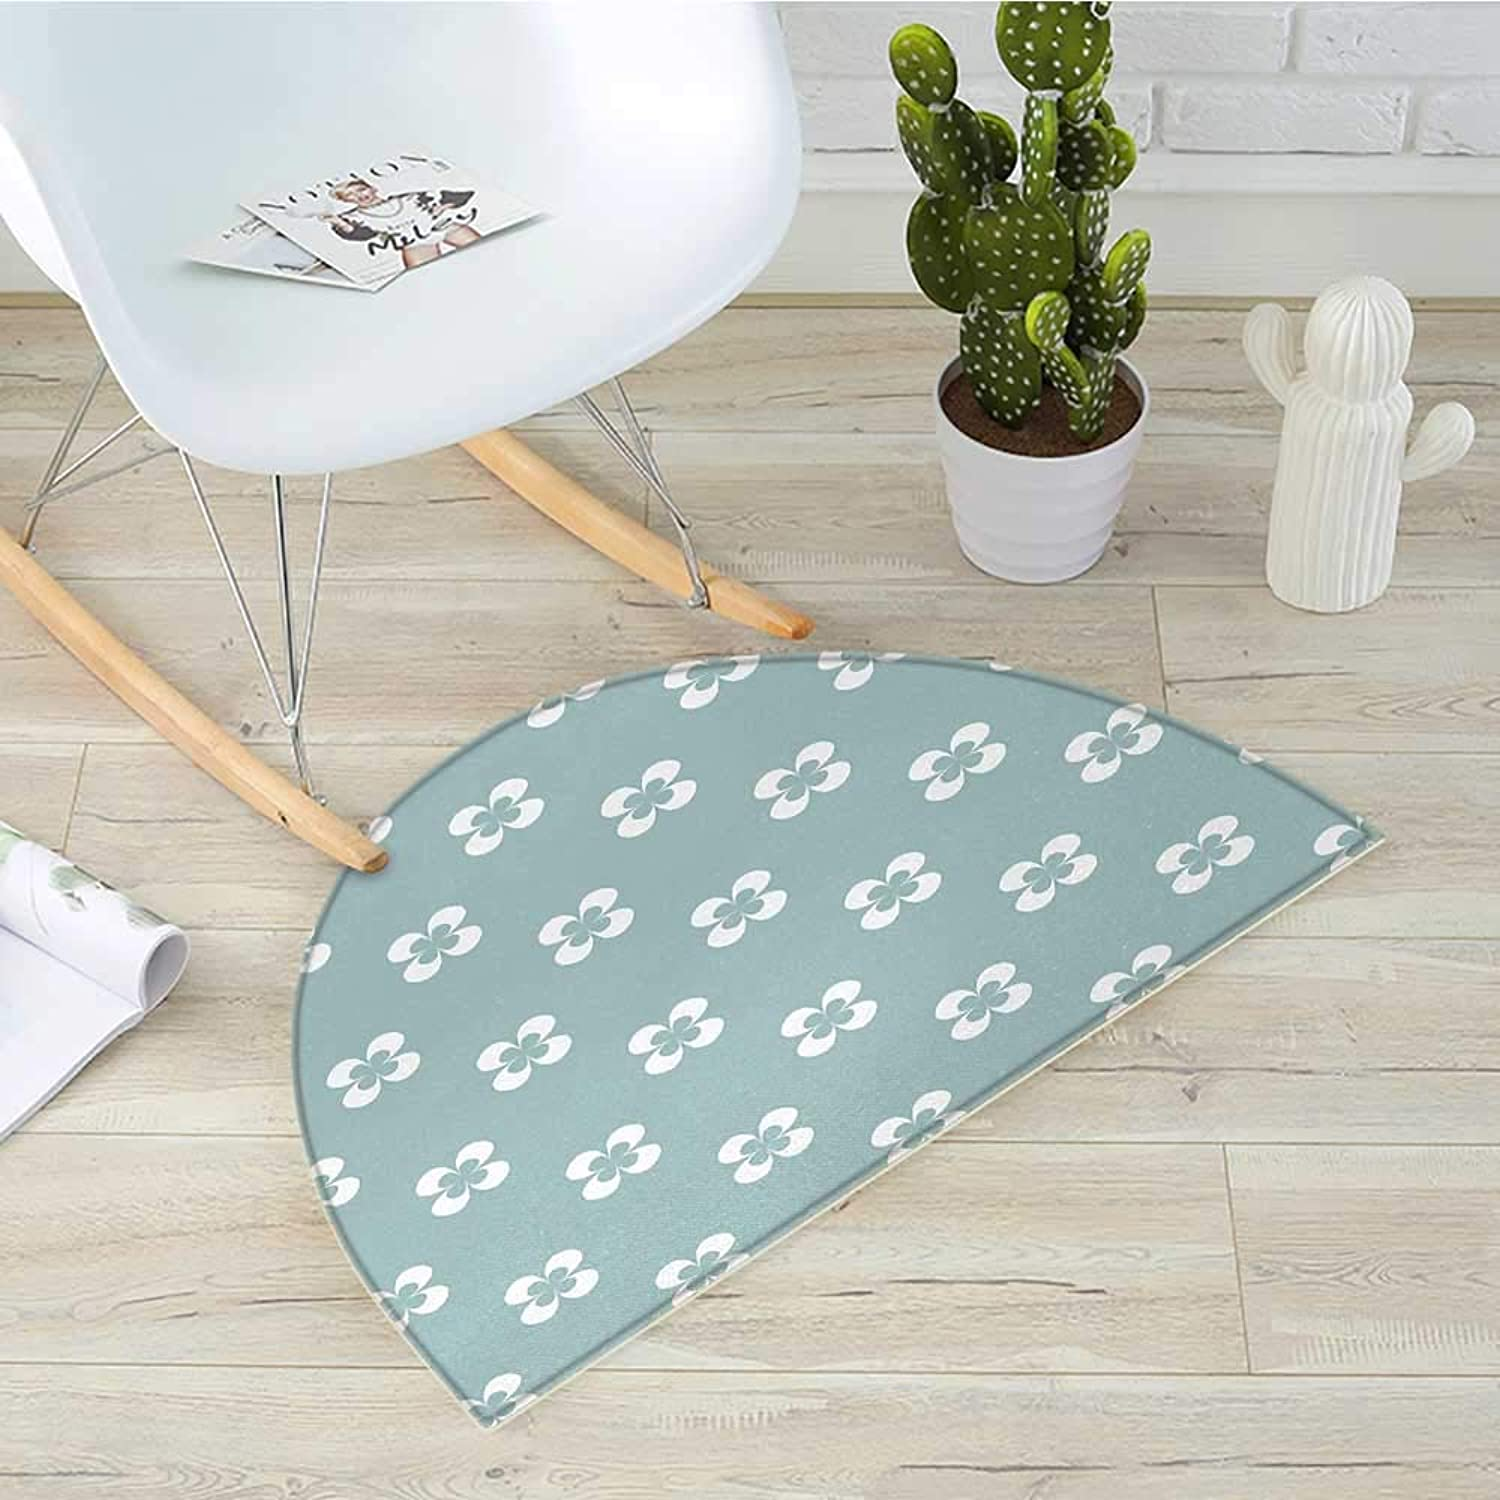 Kitchen Rugs Mats Beauty Decor 2 Piece Non Slip Kitchen Mat Runner Rug Set Valentines Day Doormat Area Rugs Various Types Of Heart Doodle Style Red White 15 7x23 6 15 7x47 2 Brigs Com